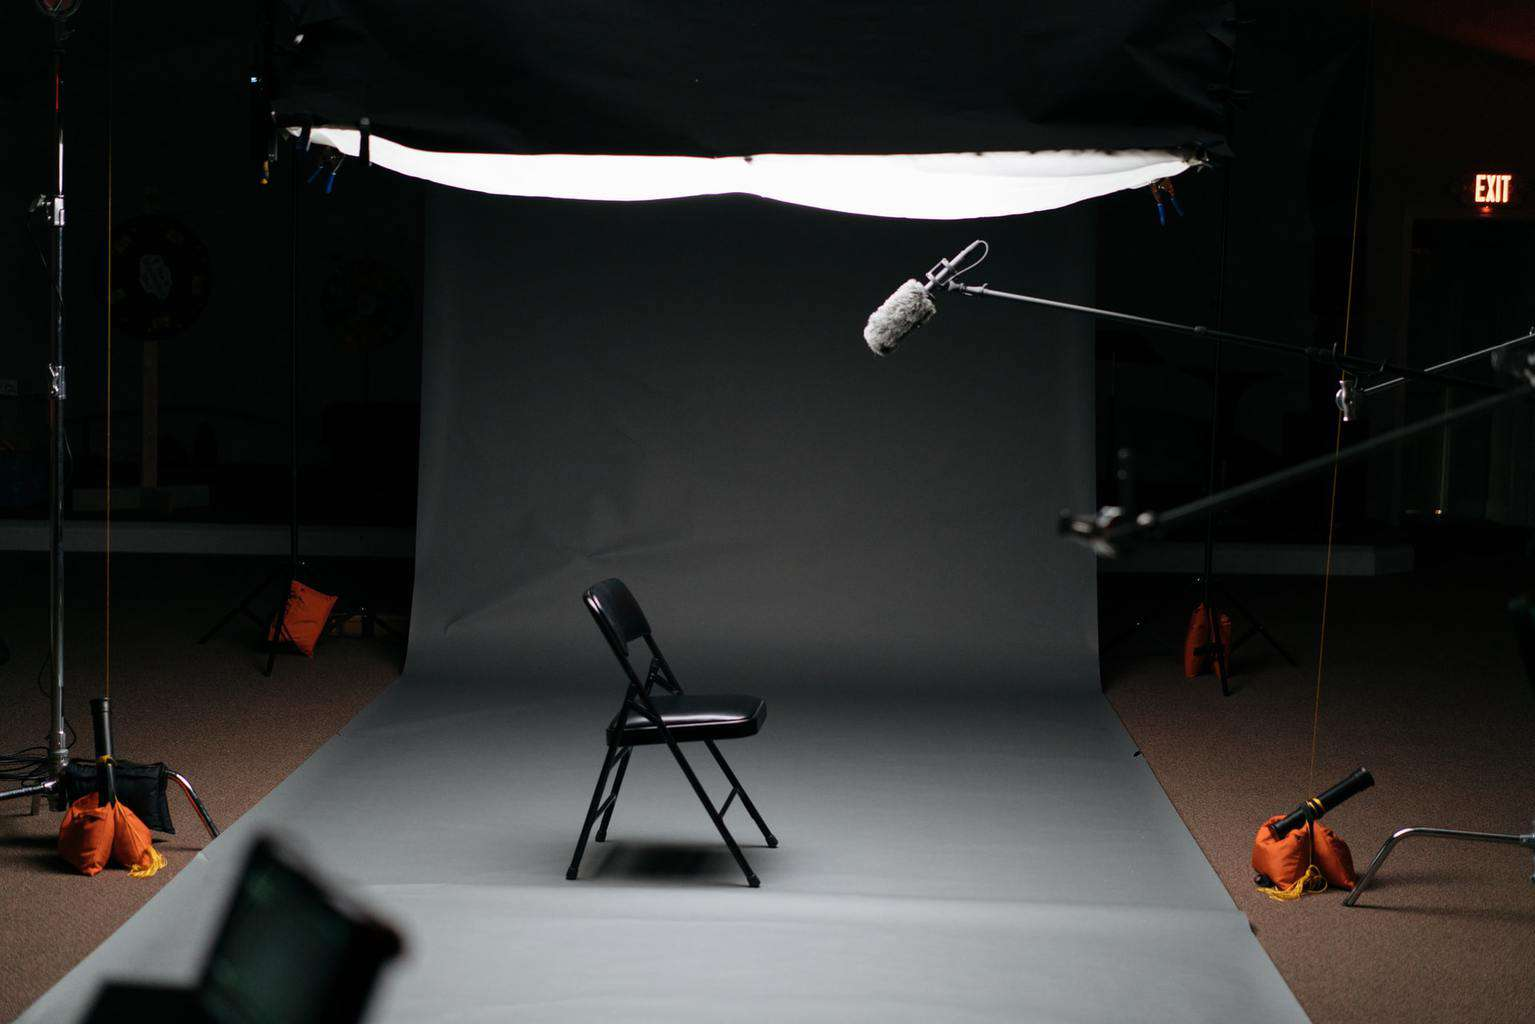 B2B Marketing Videos: How to Sell B2B Products and Services with Video